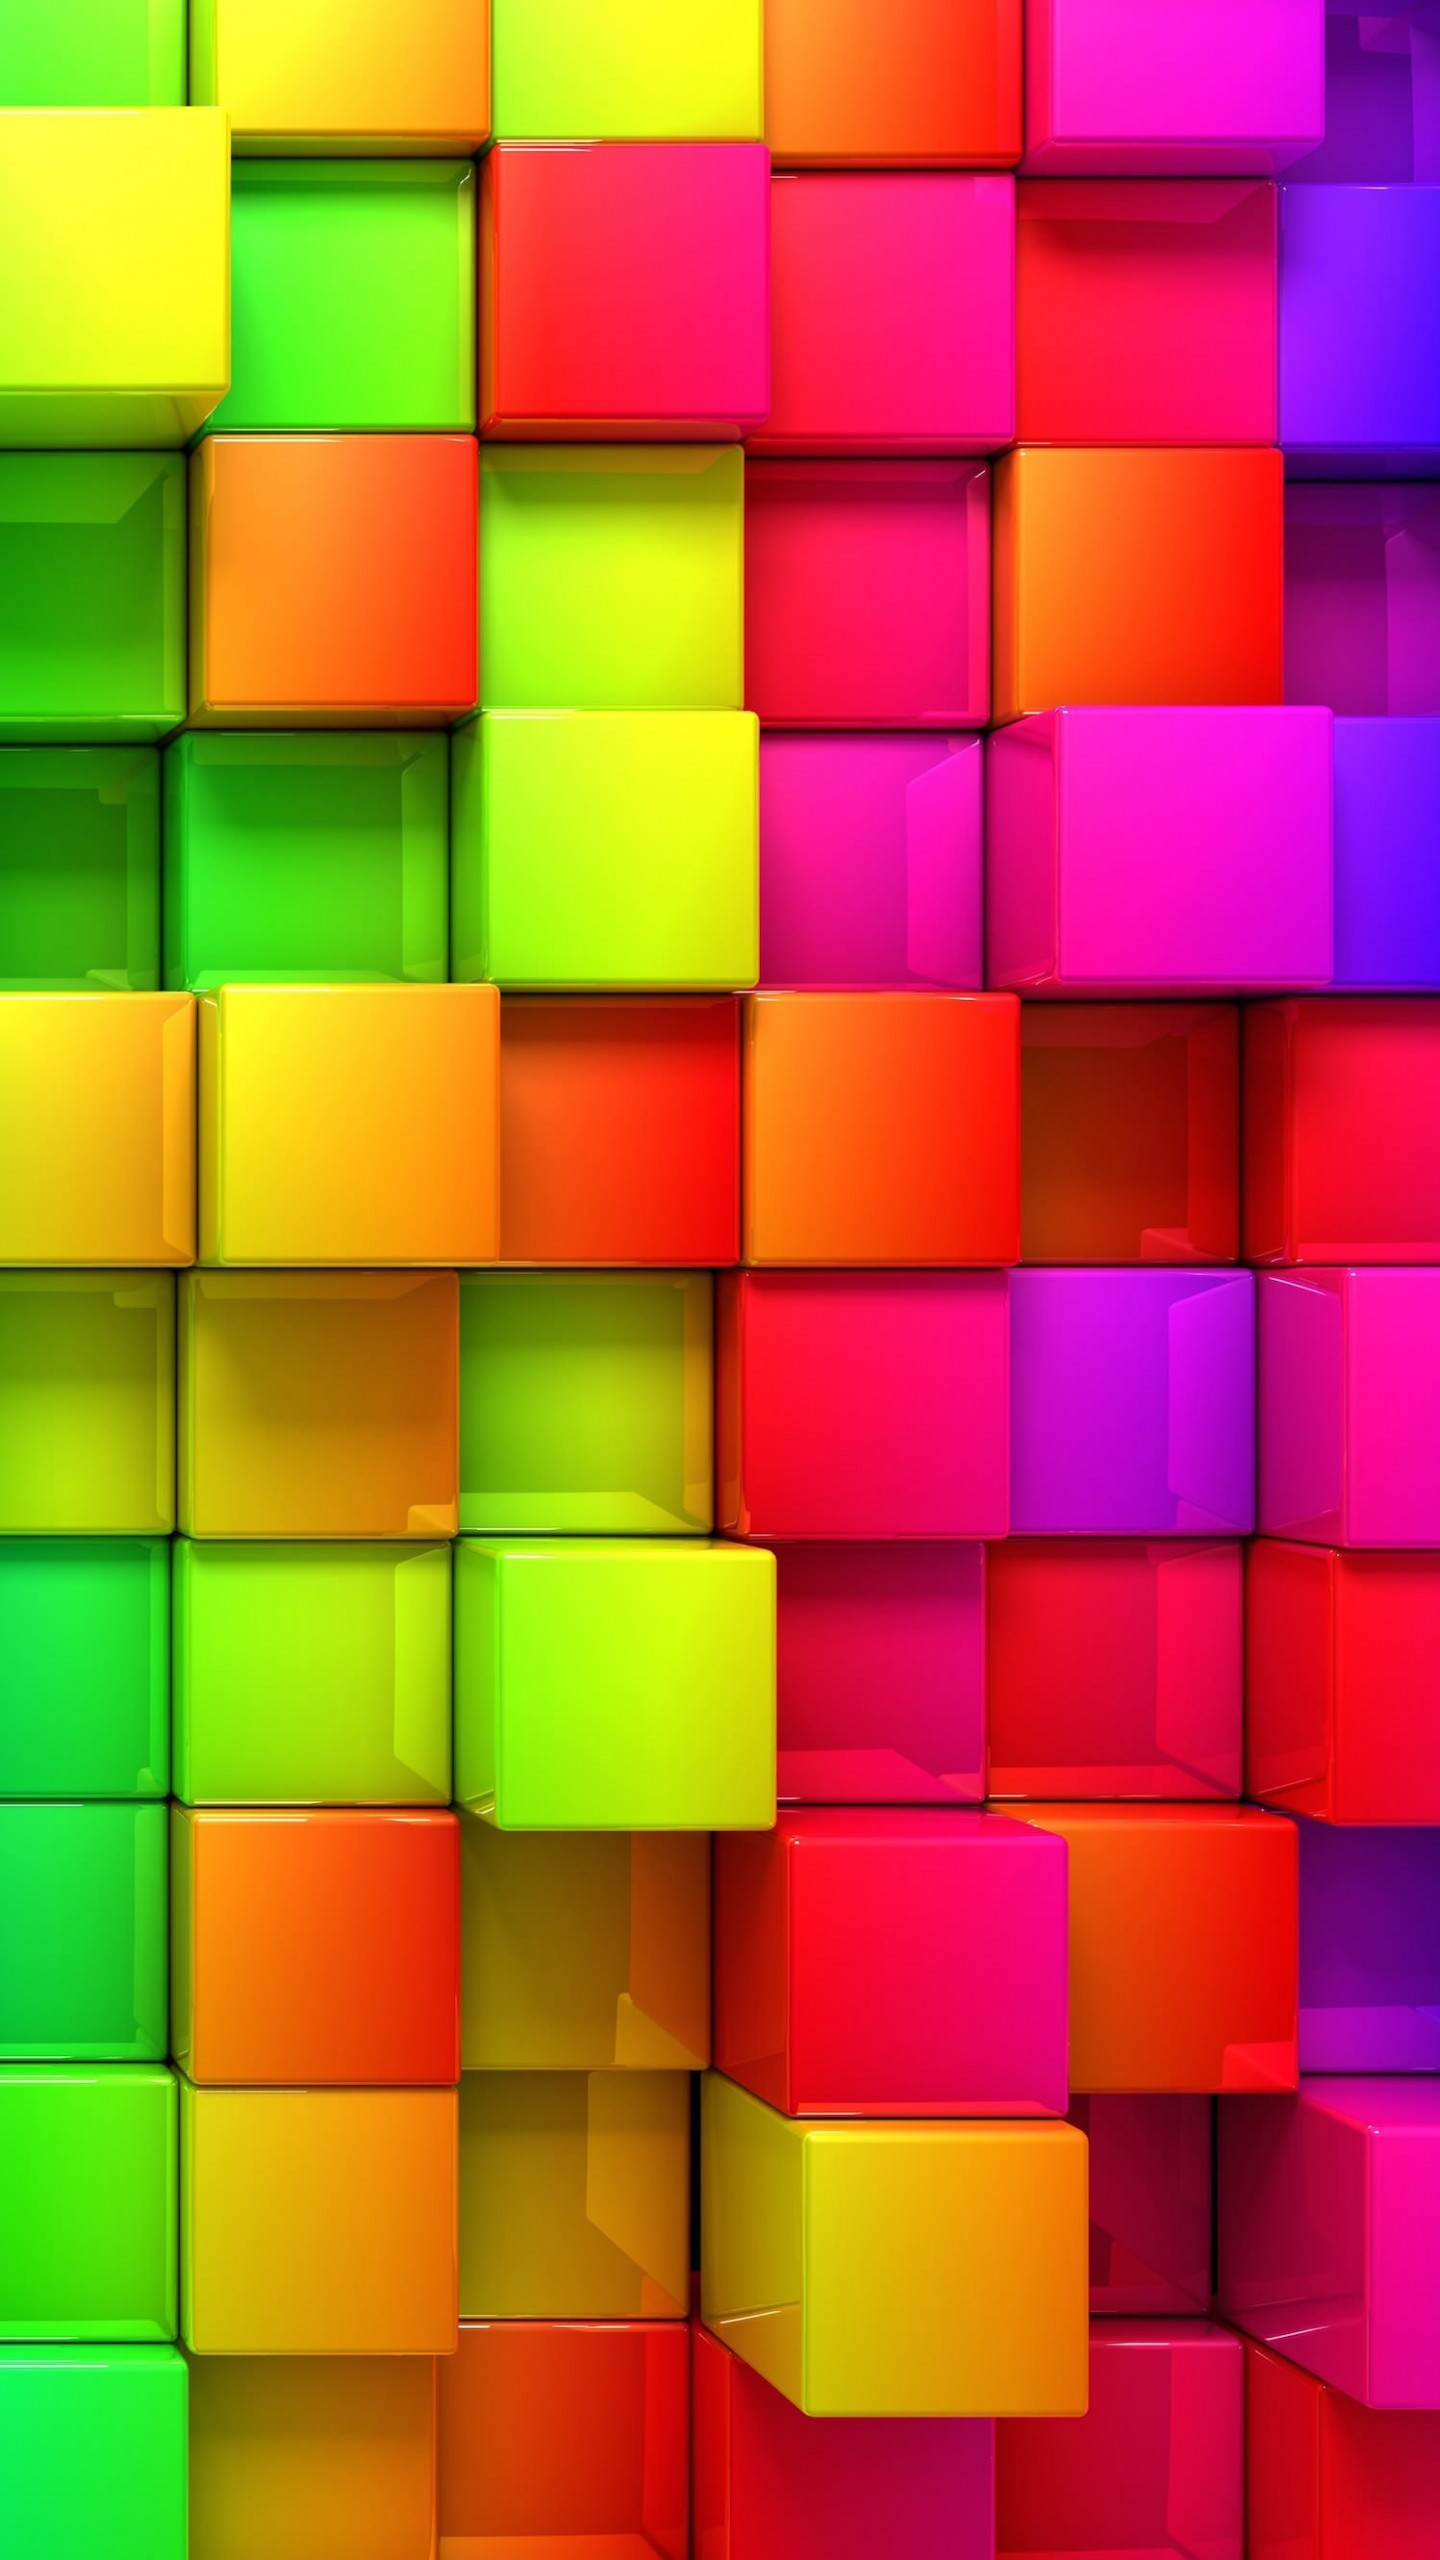 Cubic Rainbow Wallpaper for SAMSUNG Galaxy Note 4